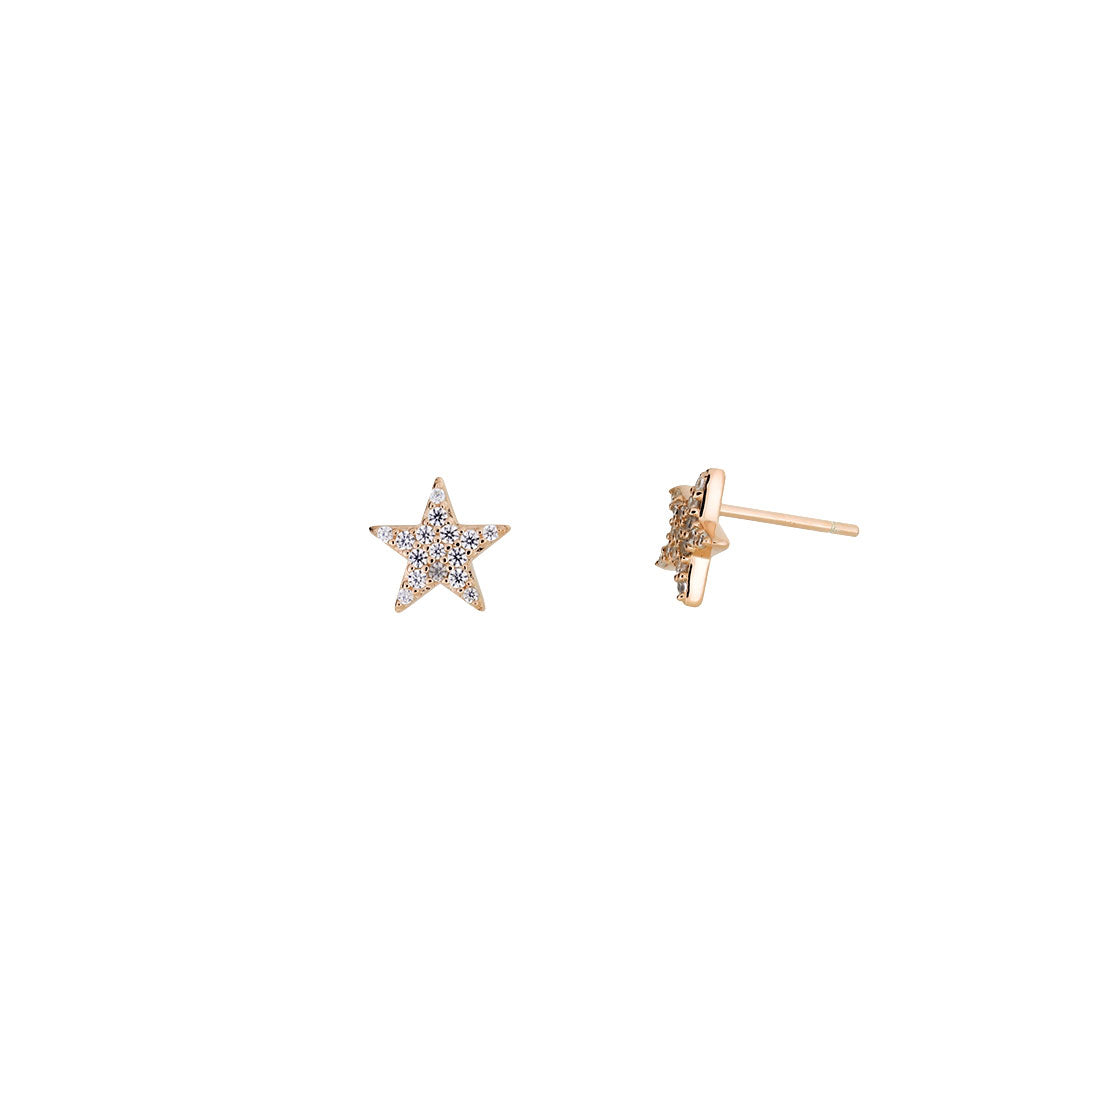 Little Pavé Star Stud Earrings - Rose Vermeil